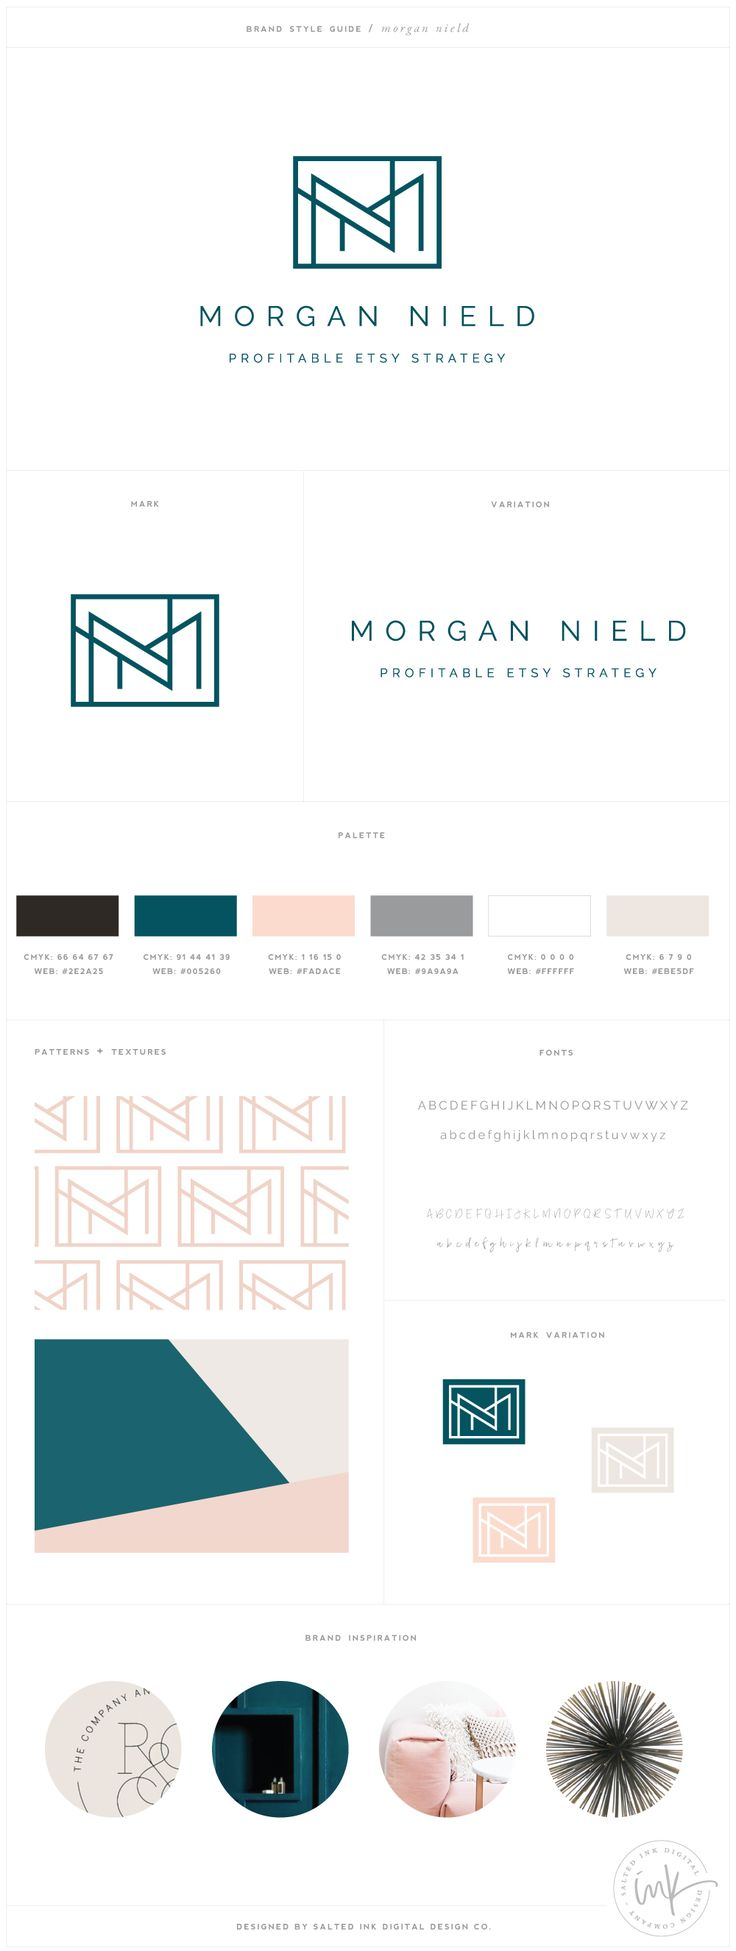 Minimalist + modern geometric logo design for morgannield.com by SaltedInk. Blush pink, mood blue, and neutrals